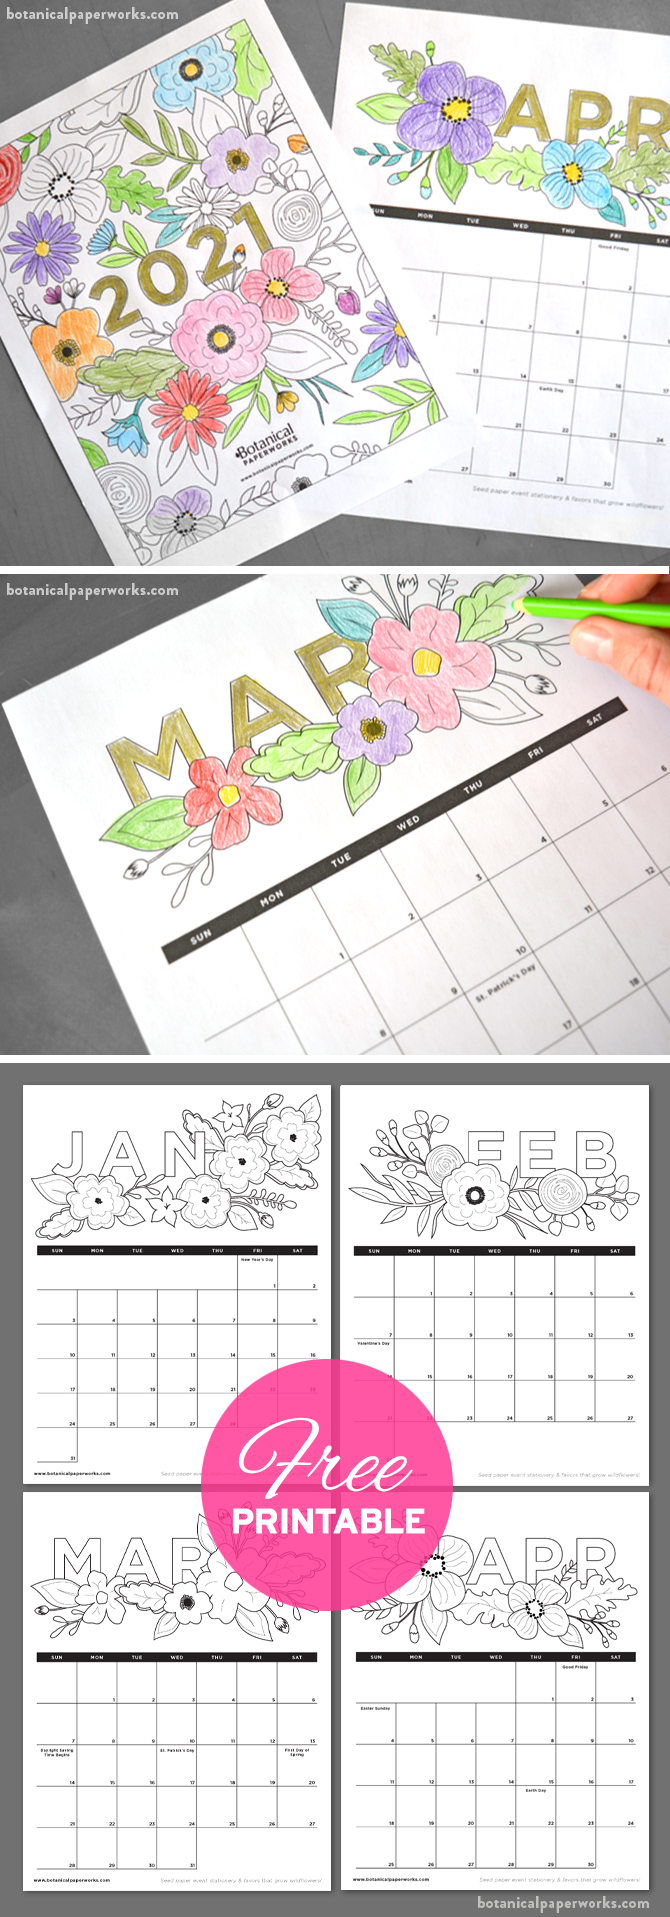 free printable coloring book style calendar for 2021